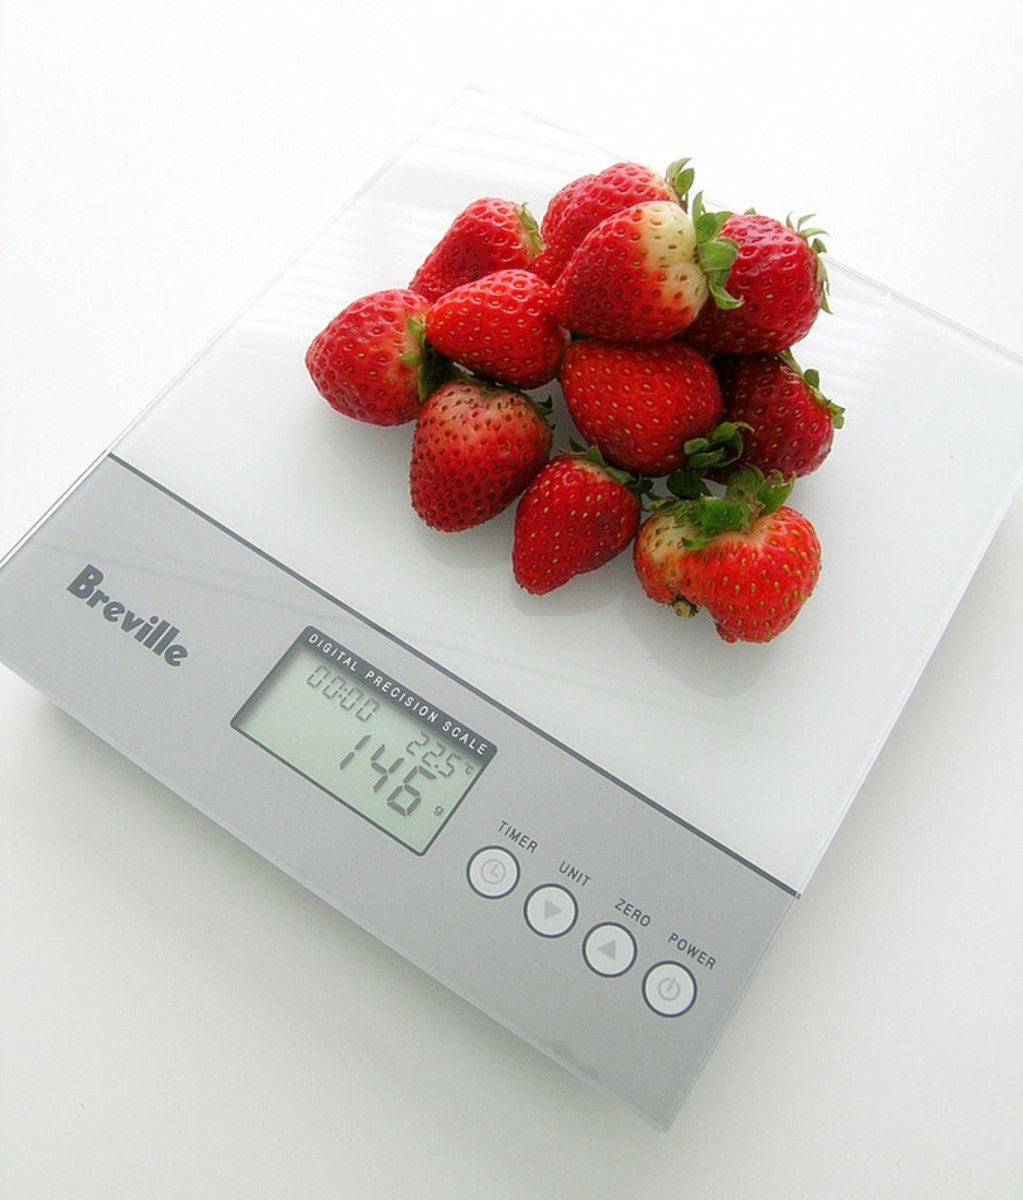 Trust the math. Weigh, measure and log your intake during your cut.